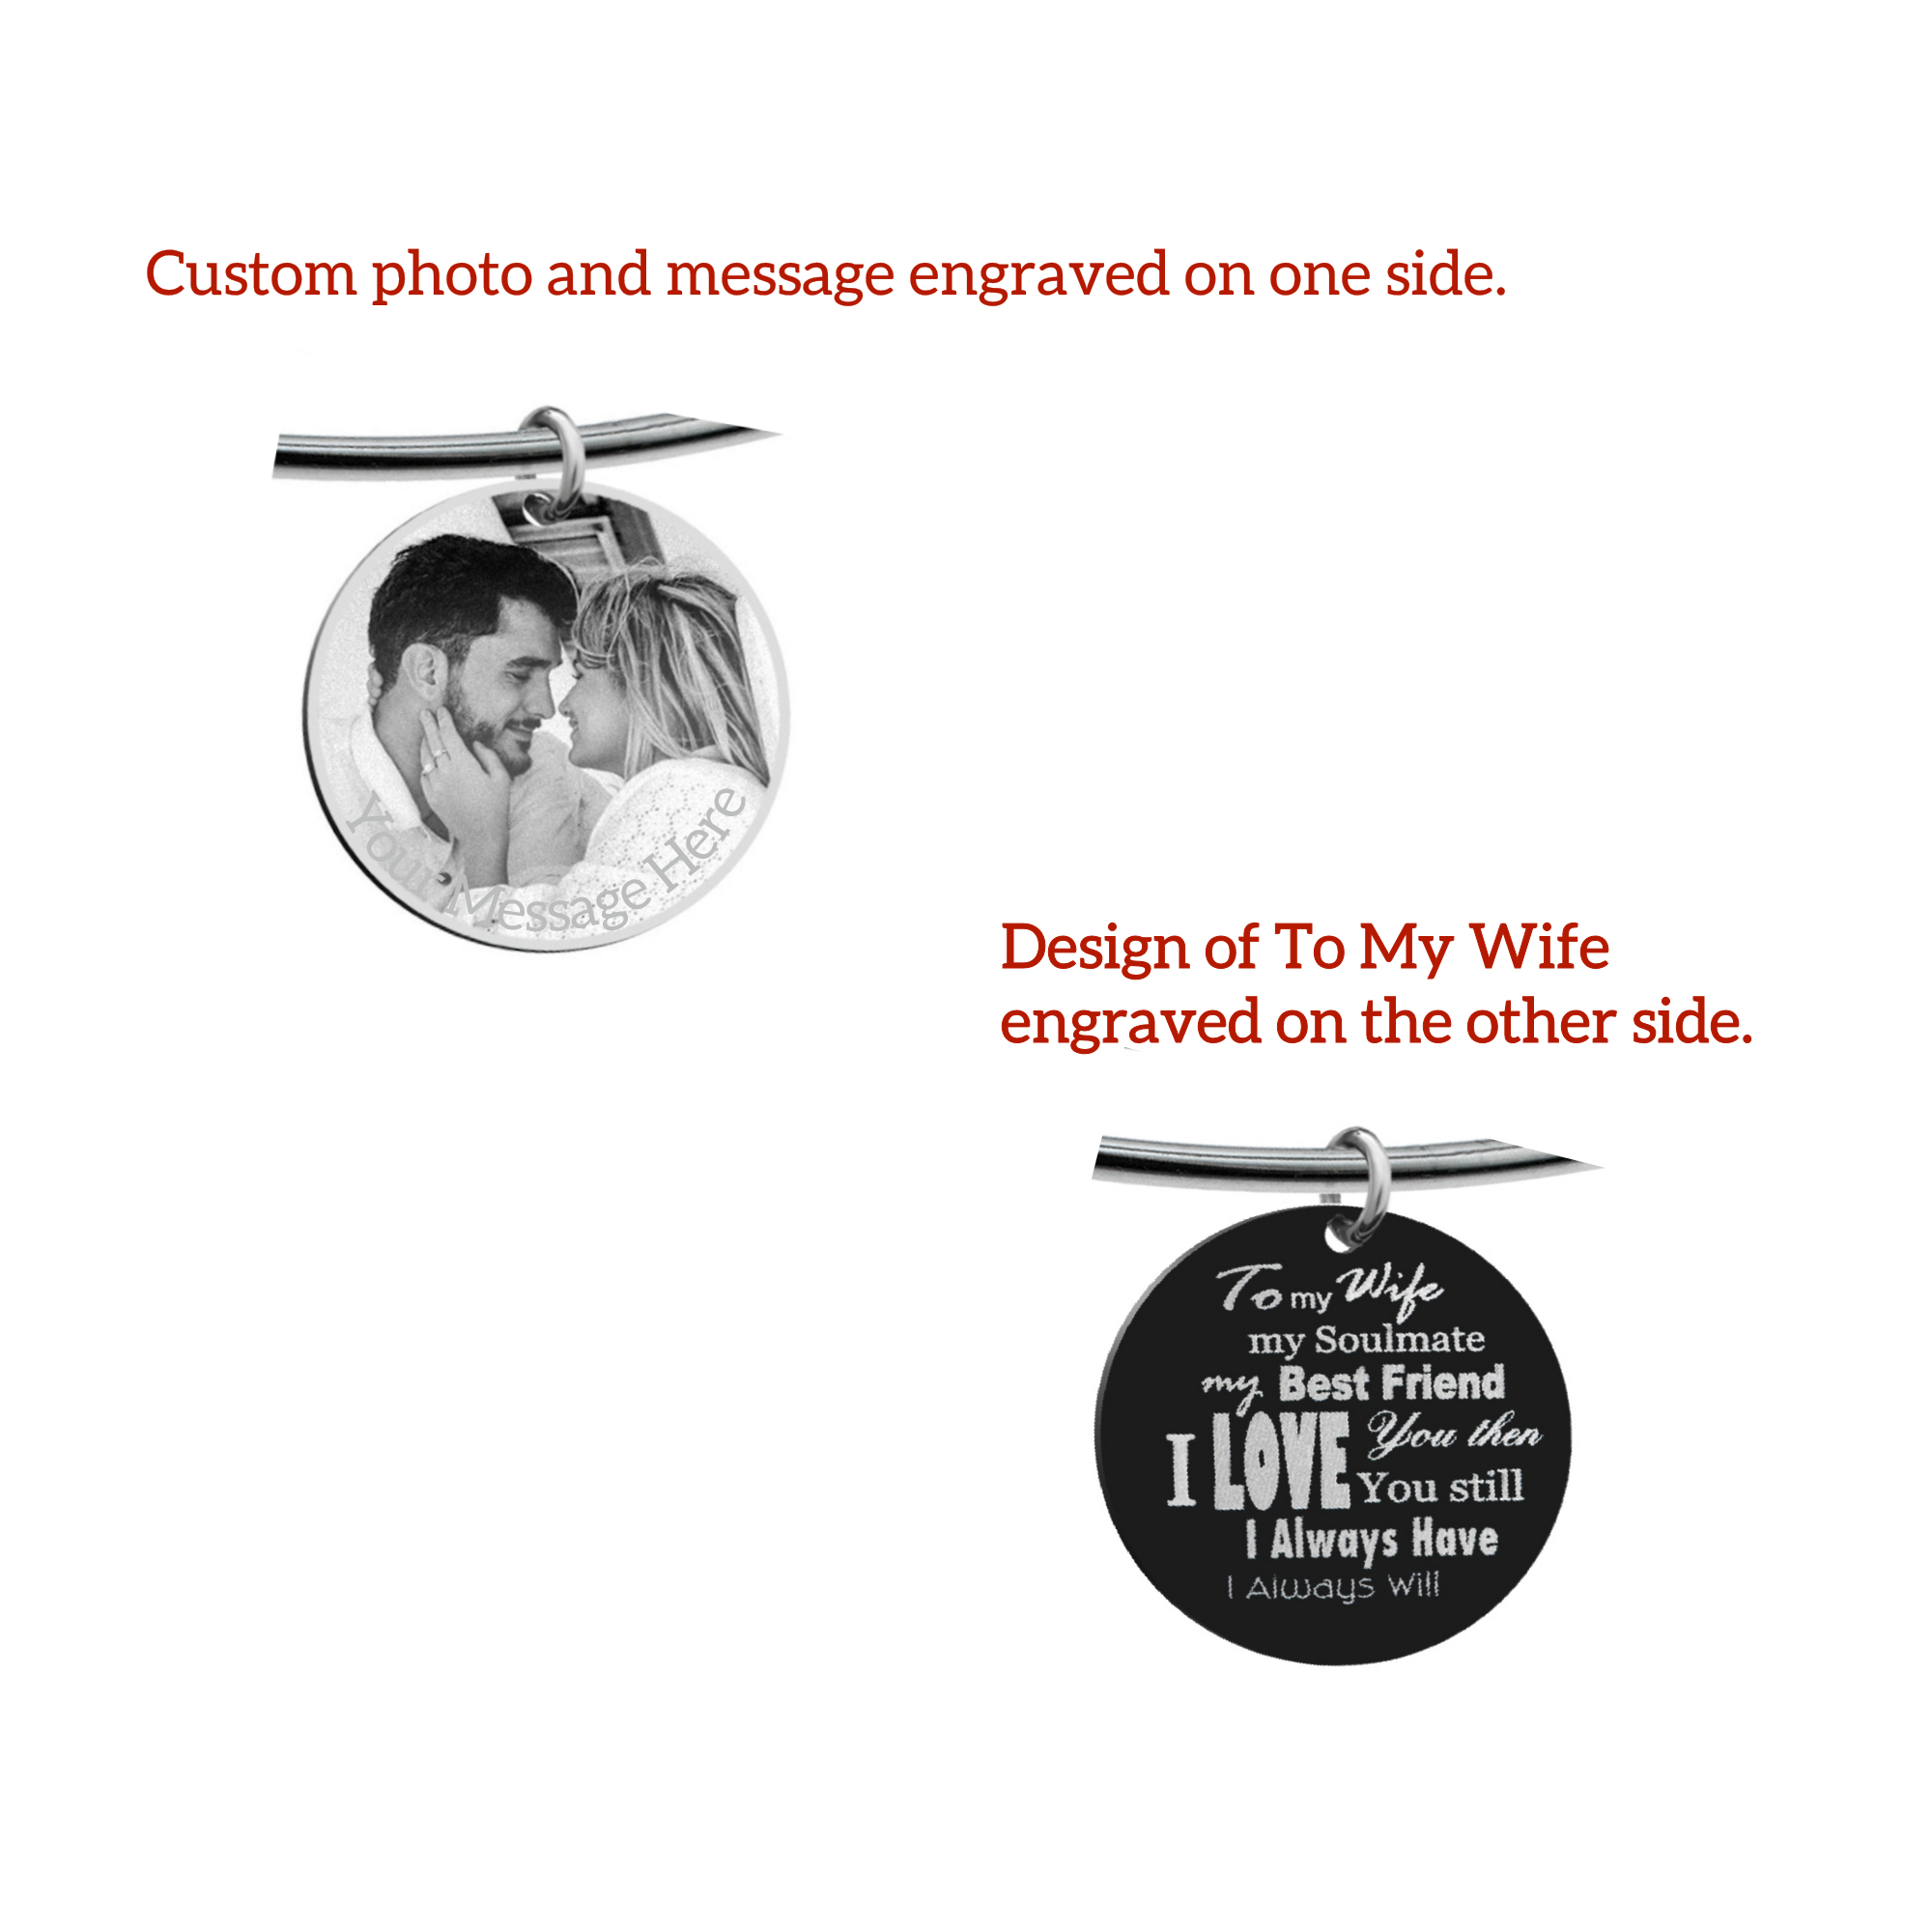 Qina C. To My Wife My Soulmate Engraved Pesonalized Photo and Message Round Disc Charm Adjustable Wire Bangle Bracelet